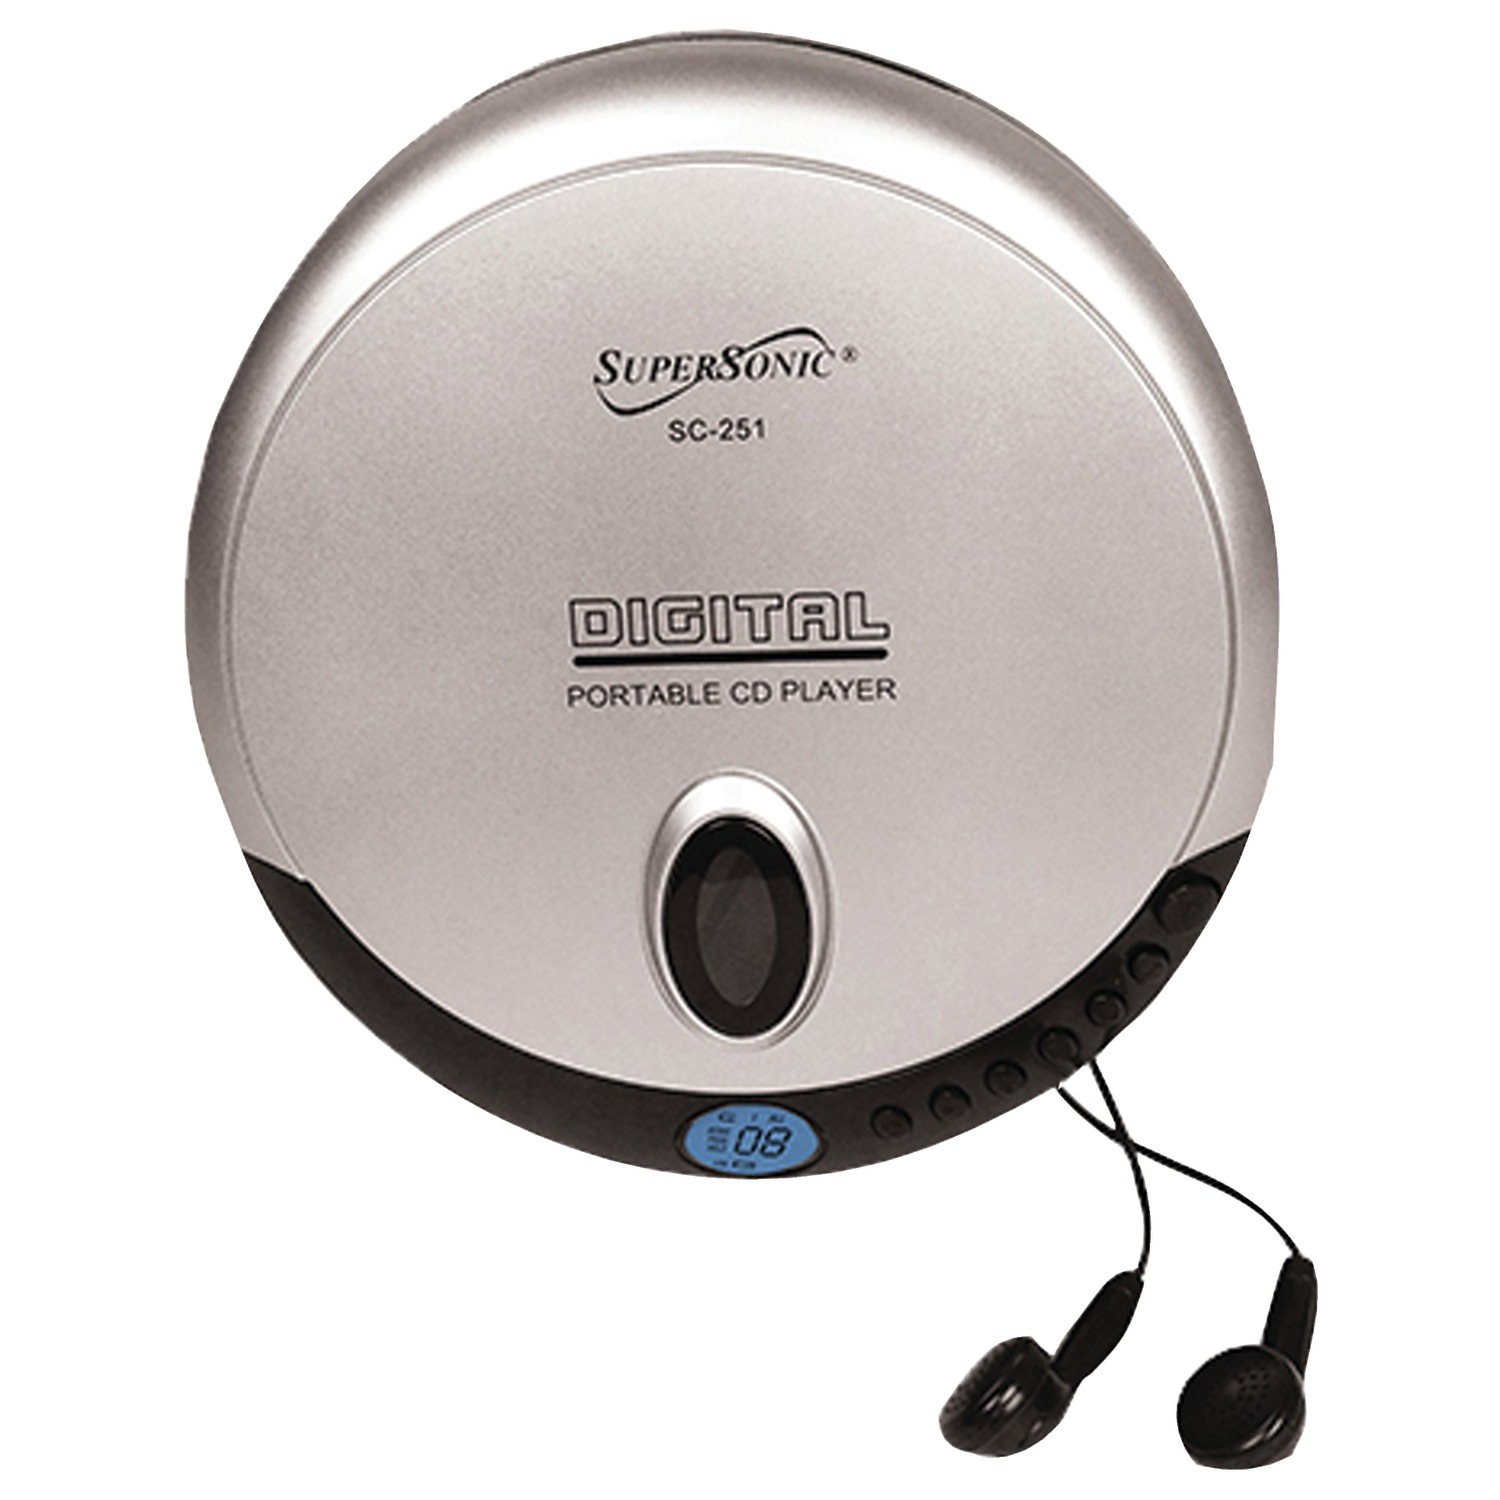 Supersonic SC-251 Personal CD Player by Supersonic